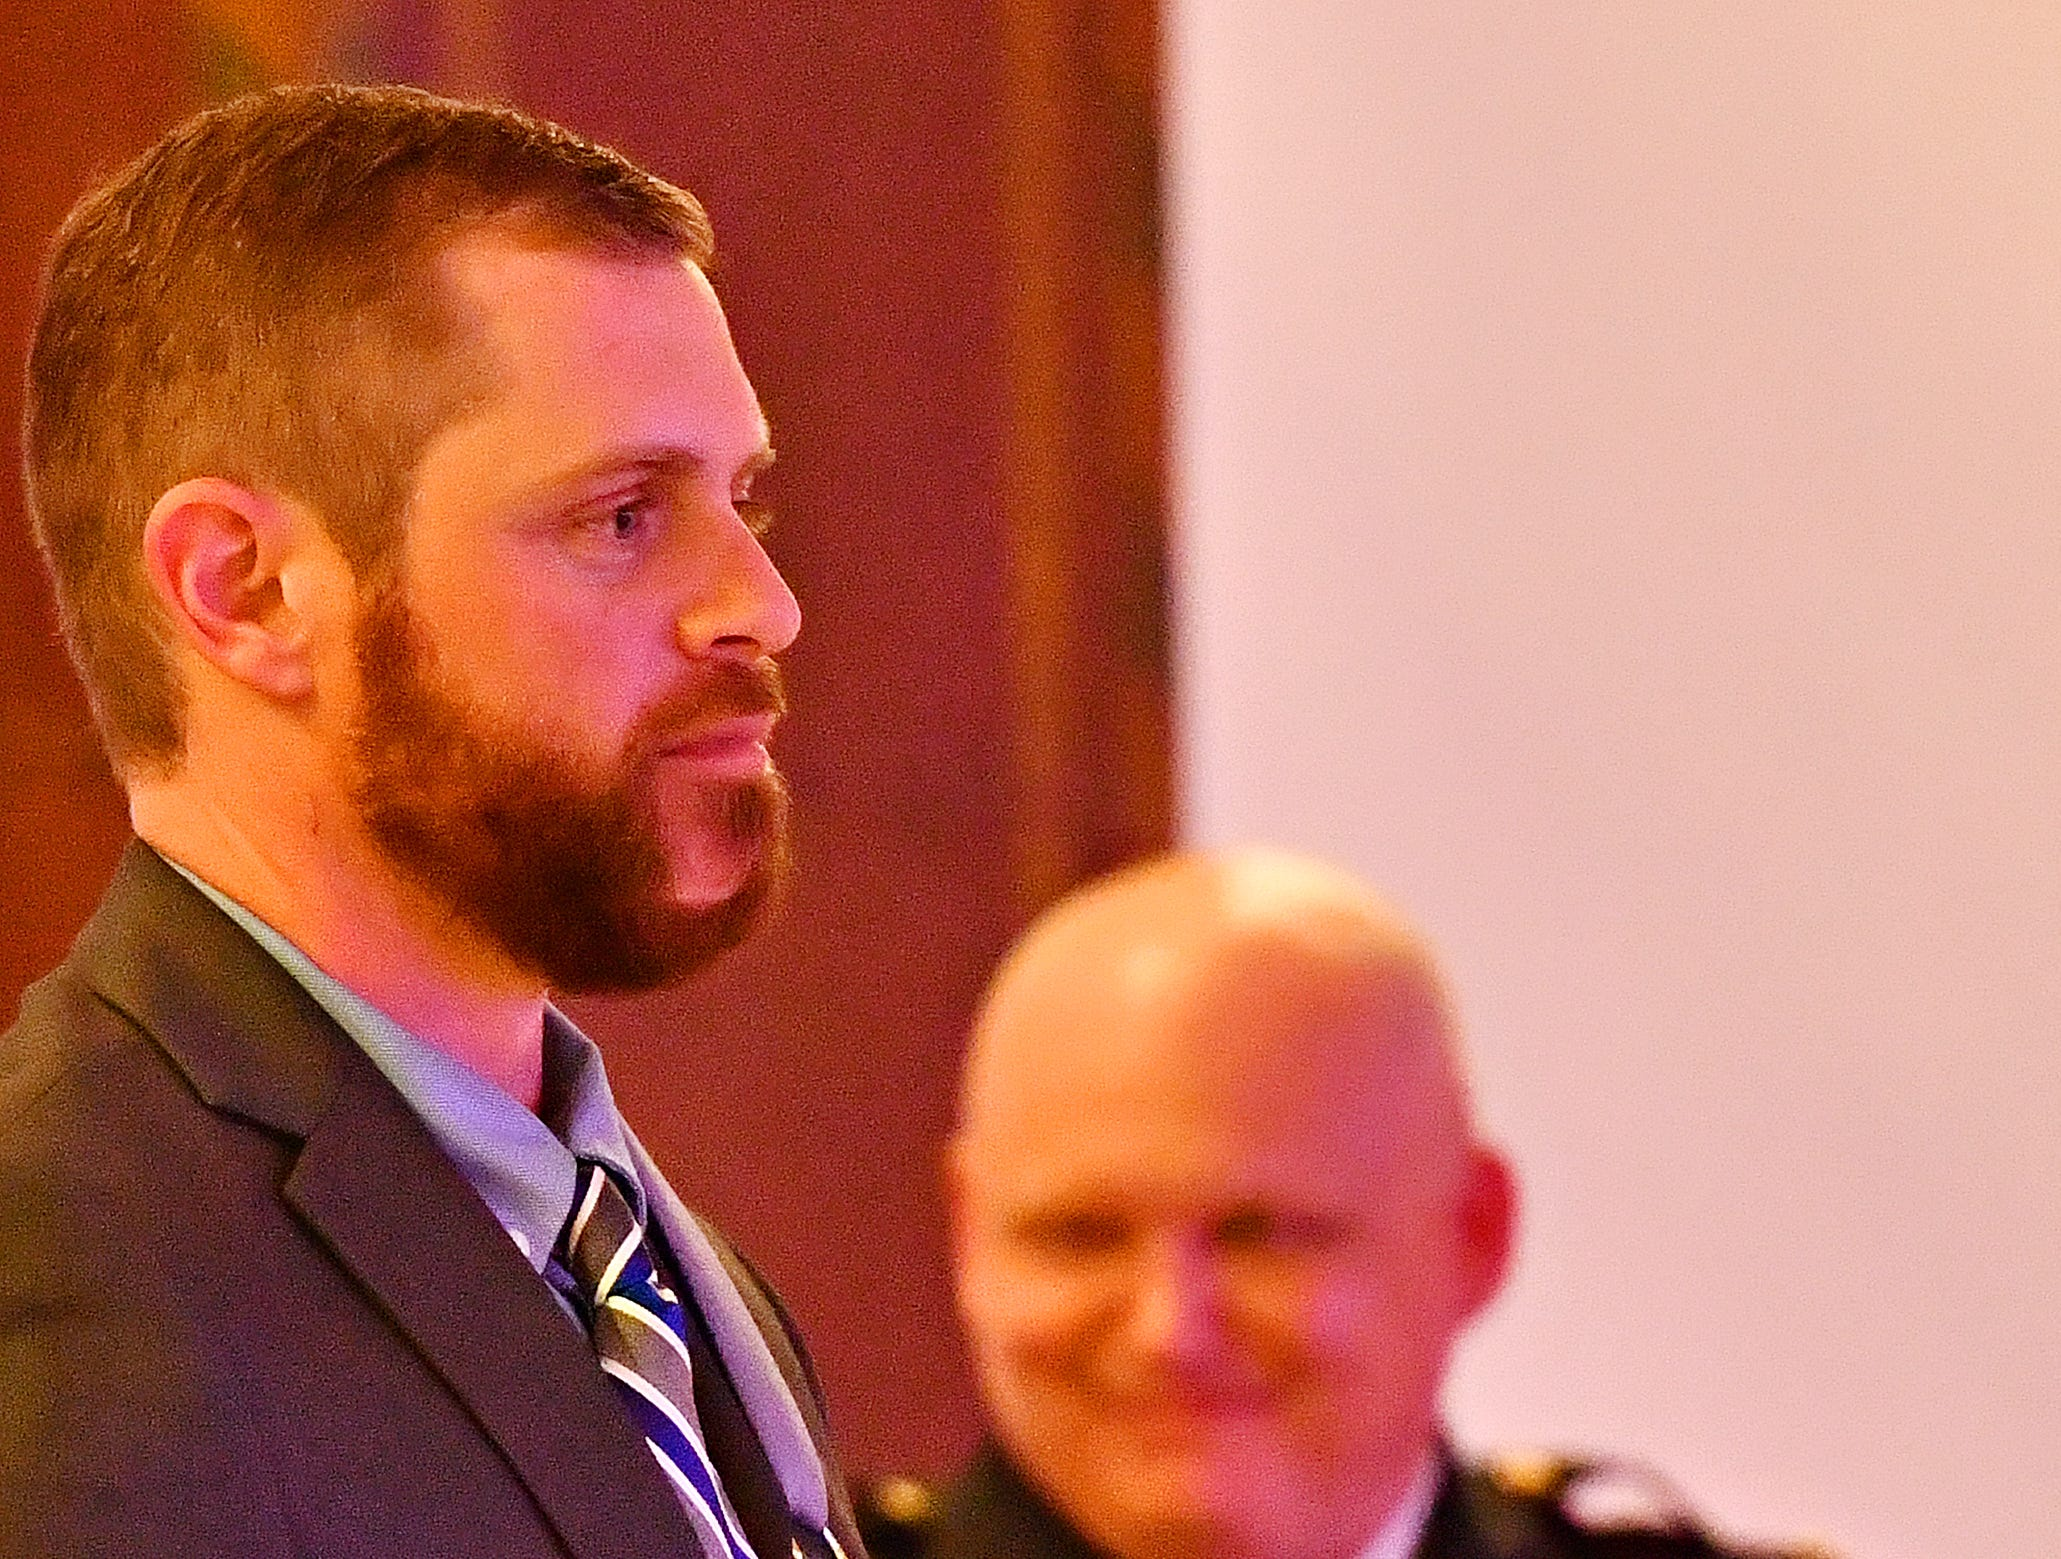 """York City Police Officer Kyle Pitts, left, is applauded as he receives the 2018 """"Wound Bar"""" award by York City Police Chief Troy Bankert during the York City Police Departmental Awards Ceremony at Valencia Ballroom in York City, Thursday, May 9, 2019. Dawn J. Sagert photo"""